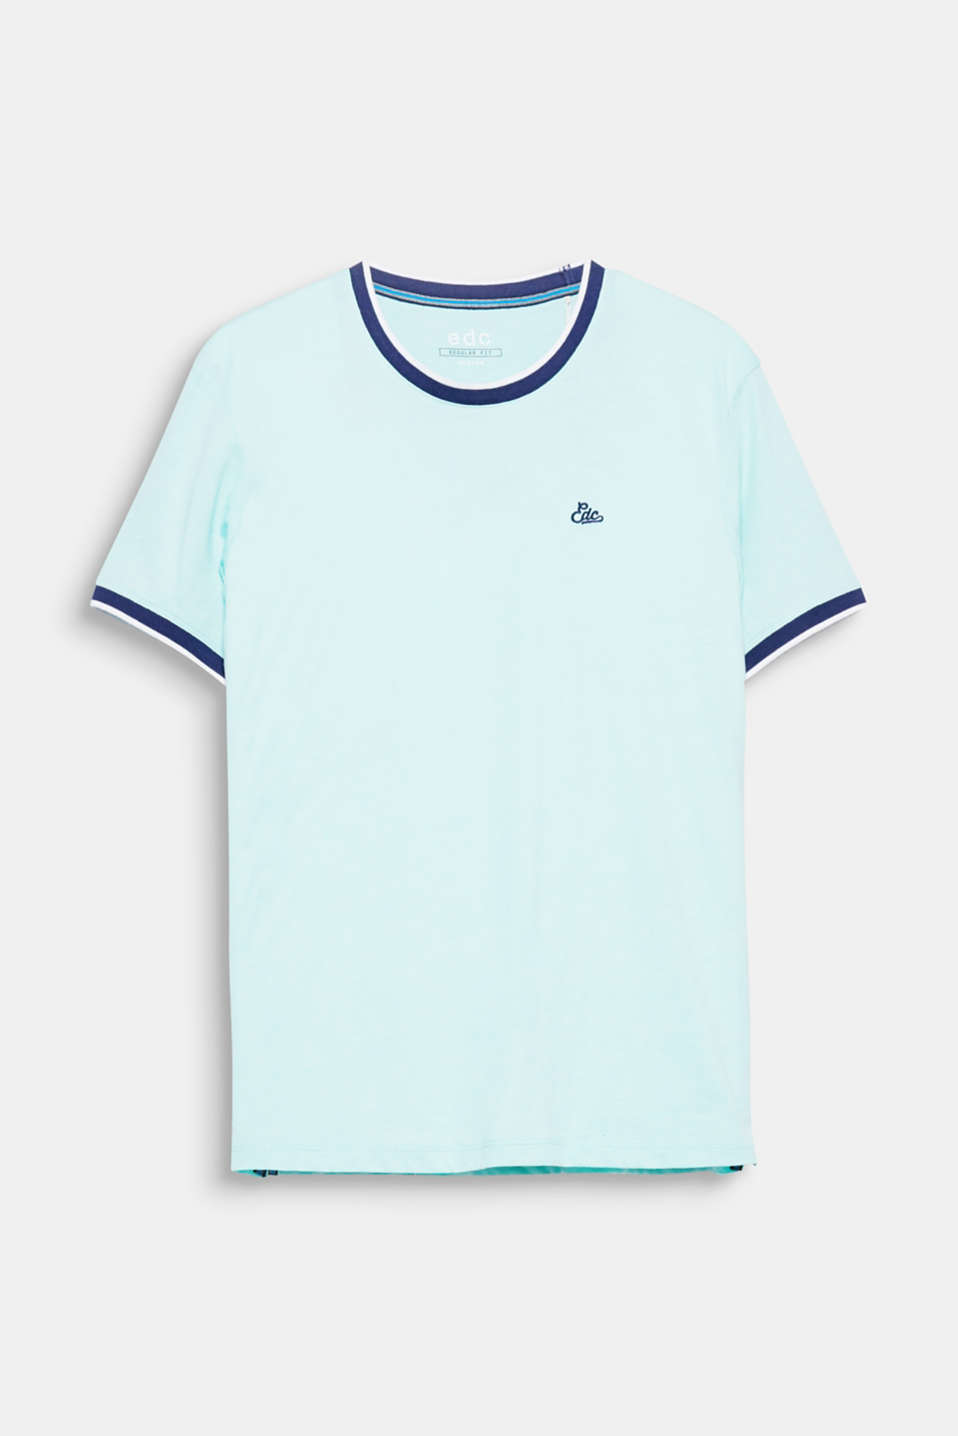 The contrasting colour ribbed borders give this T-shirt a sporty retro look.